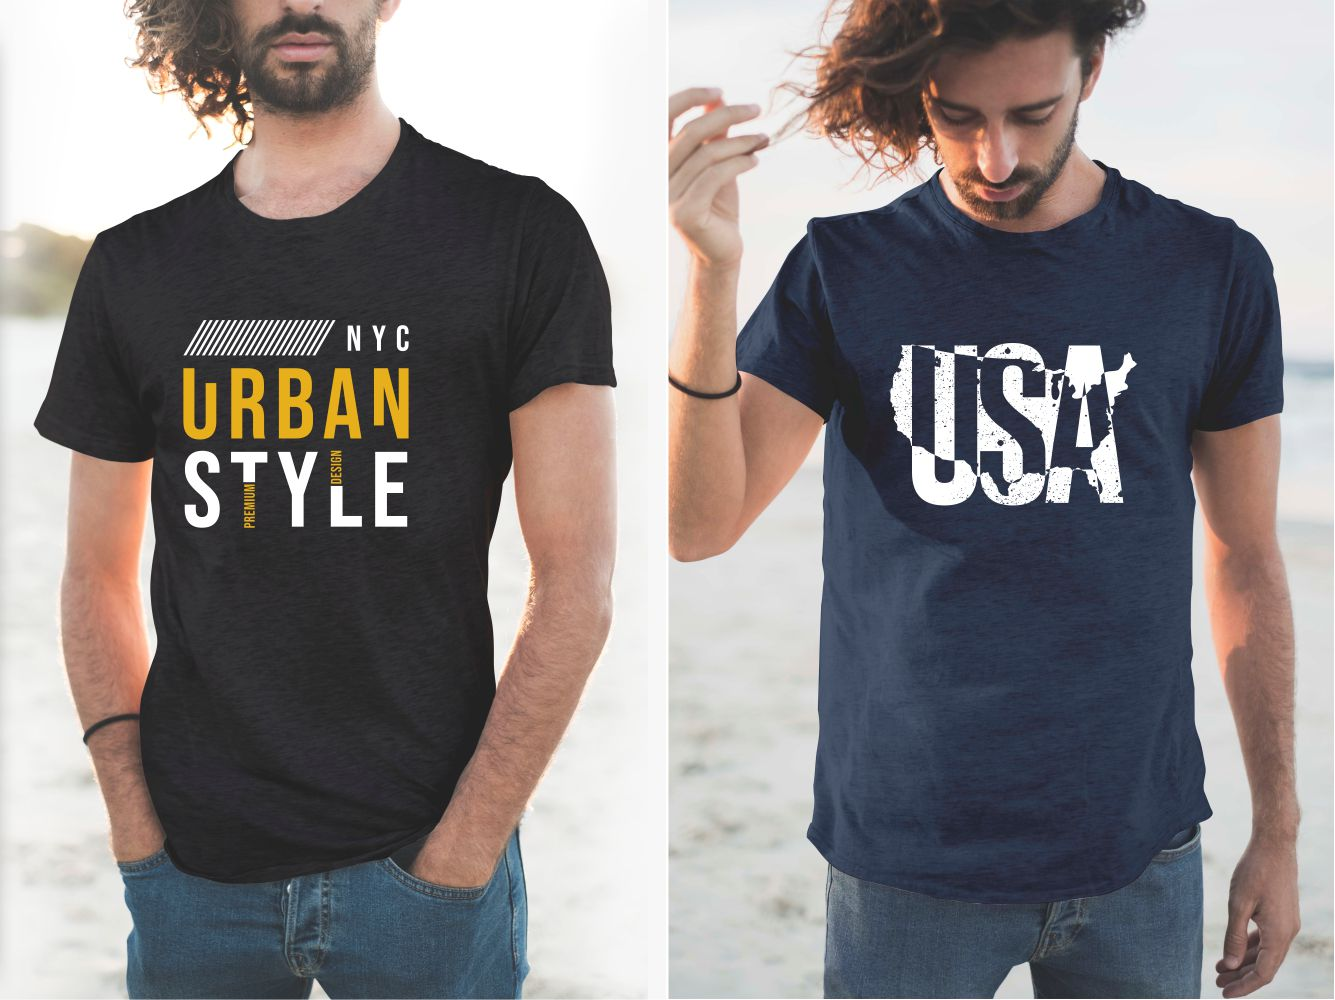 Blue and black men's T-shirts with urban lettering.